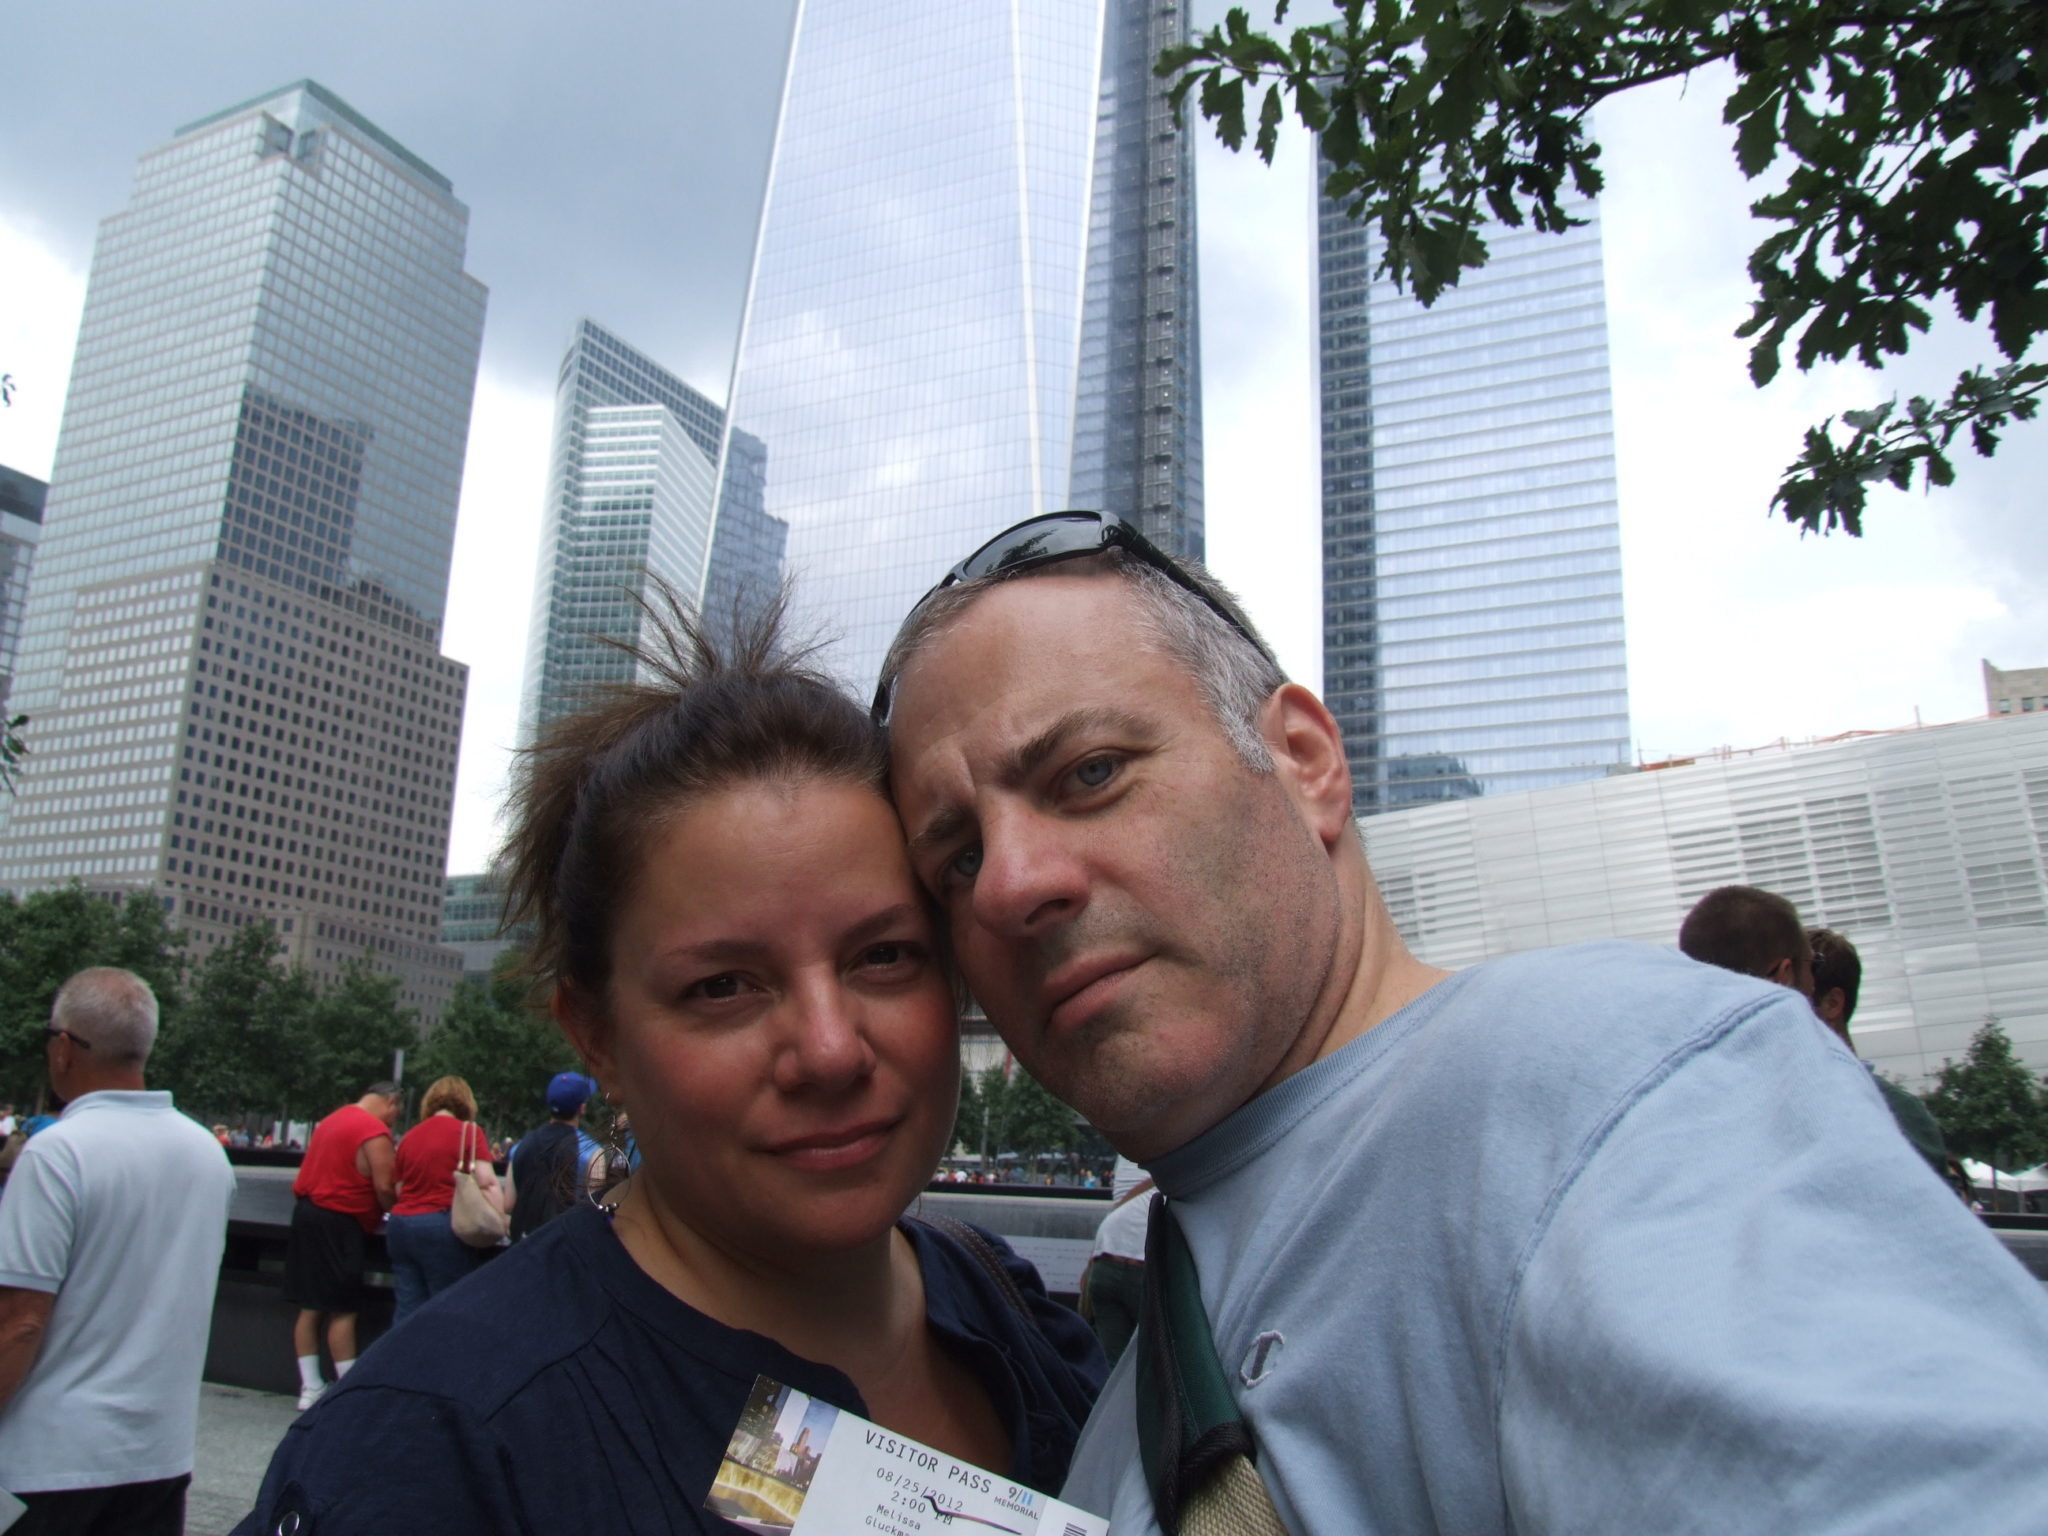 Tony and I standing in front of the Freedom Tower.  We will remember this visit for a very long time.